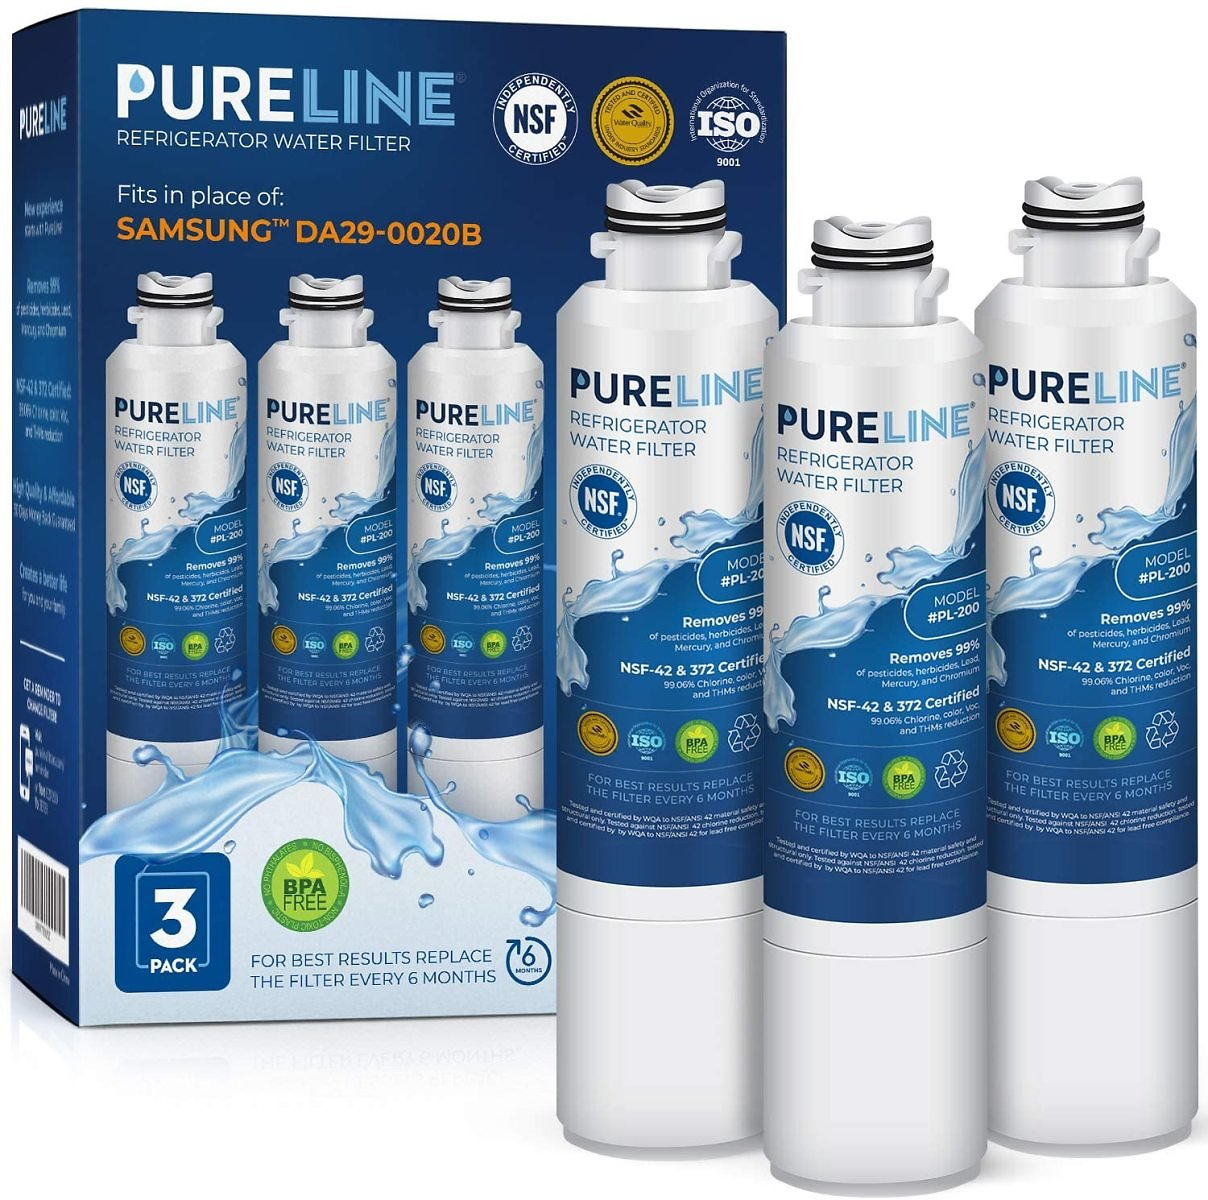 PURELINE DA29-00020B Water Filter Replacement. Compatible with Samsung DA29-00020B-1, DA29-00020B, Haf-Cin Exp, RF4267HARS, RF28